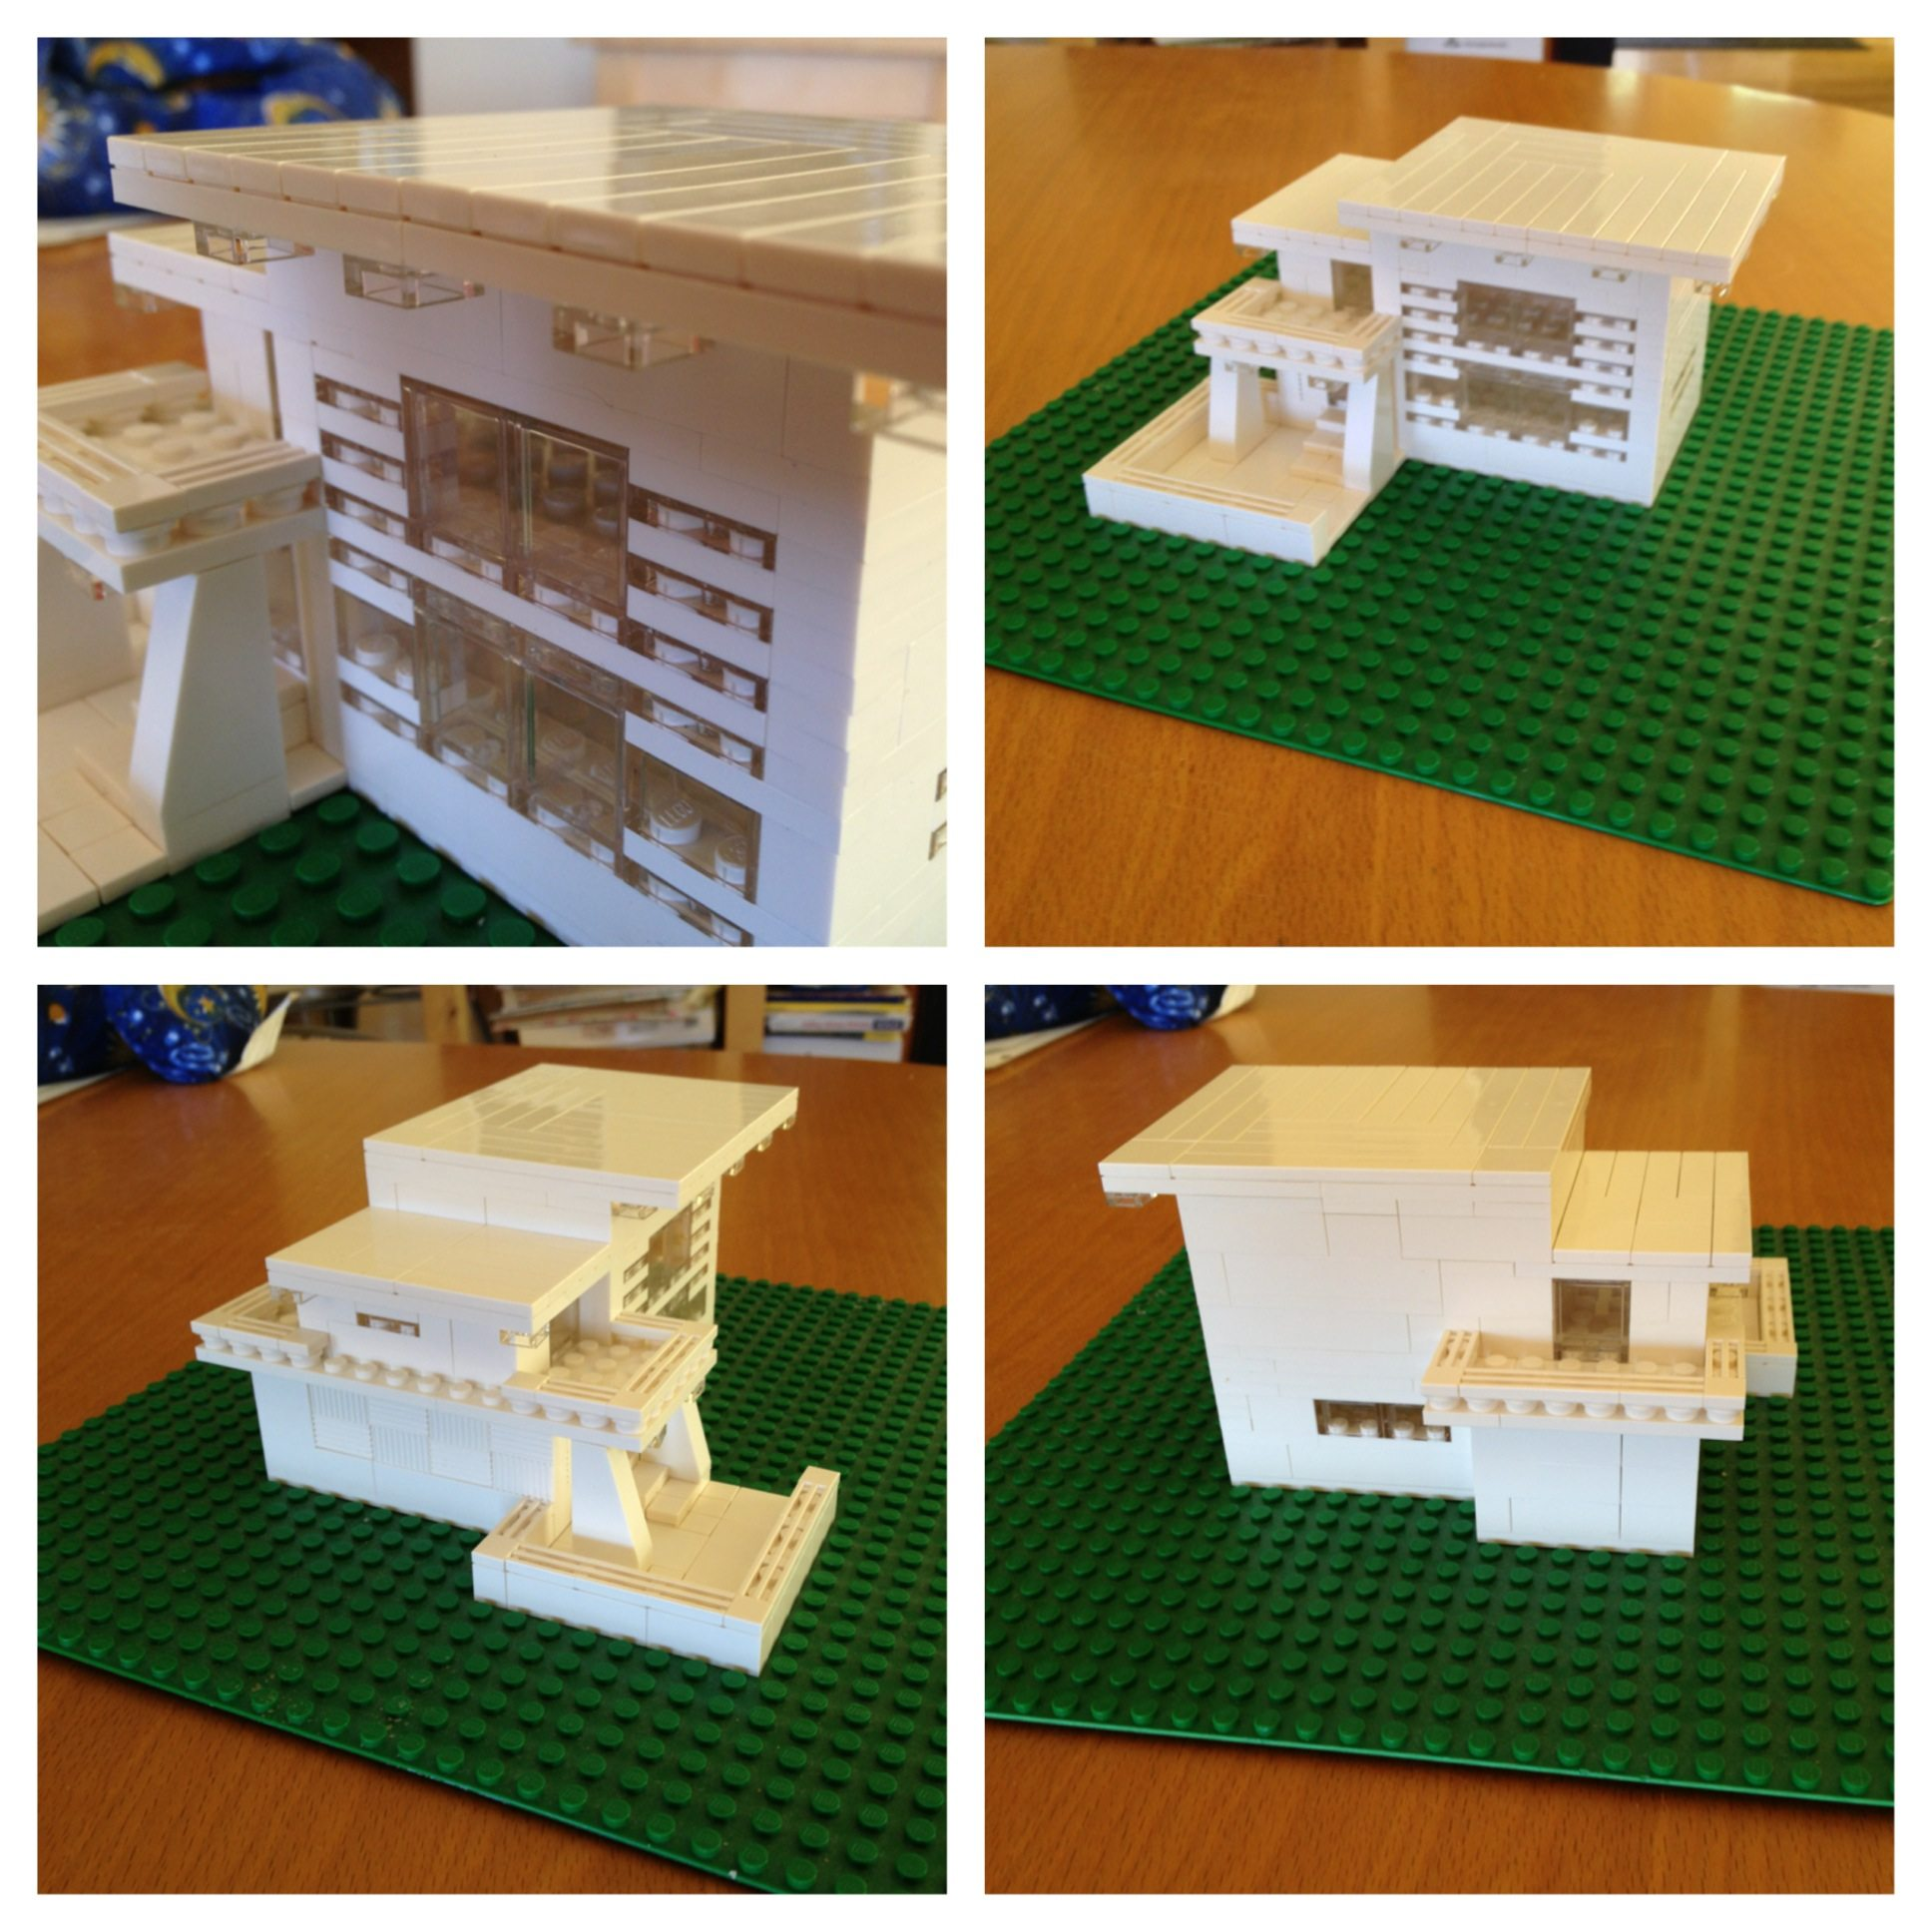 Design Your Own Structures With LEGO Architecture Studio ...